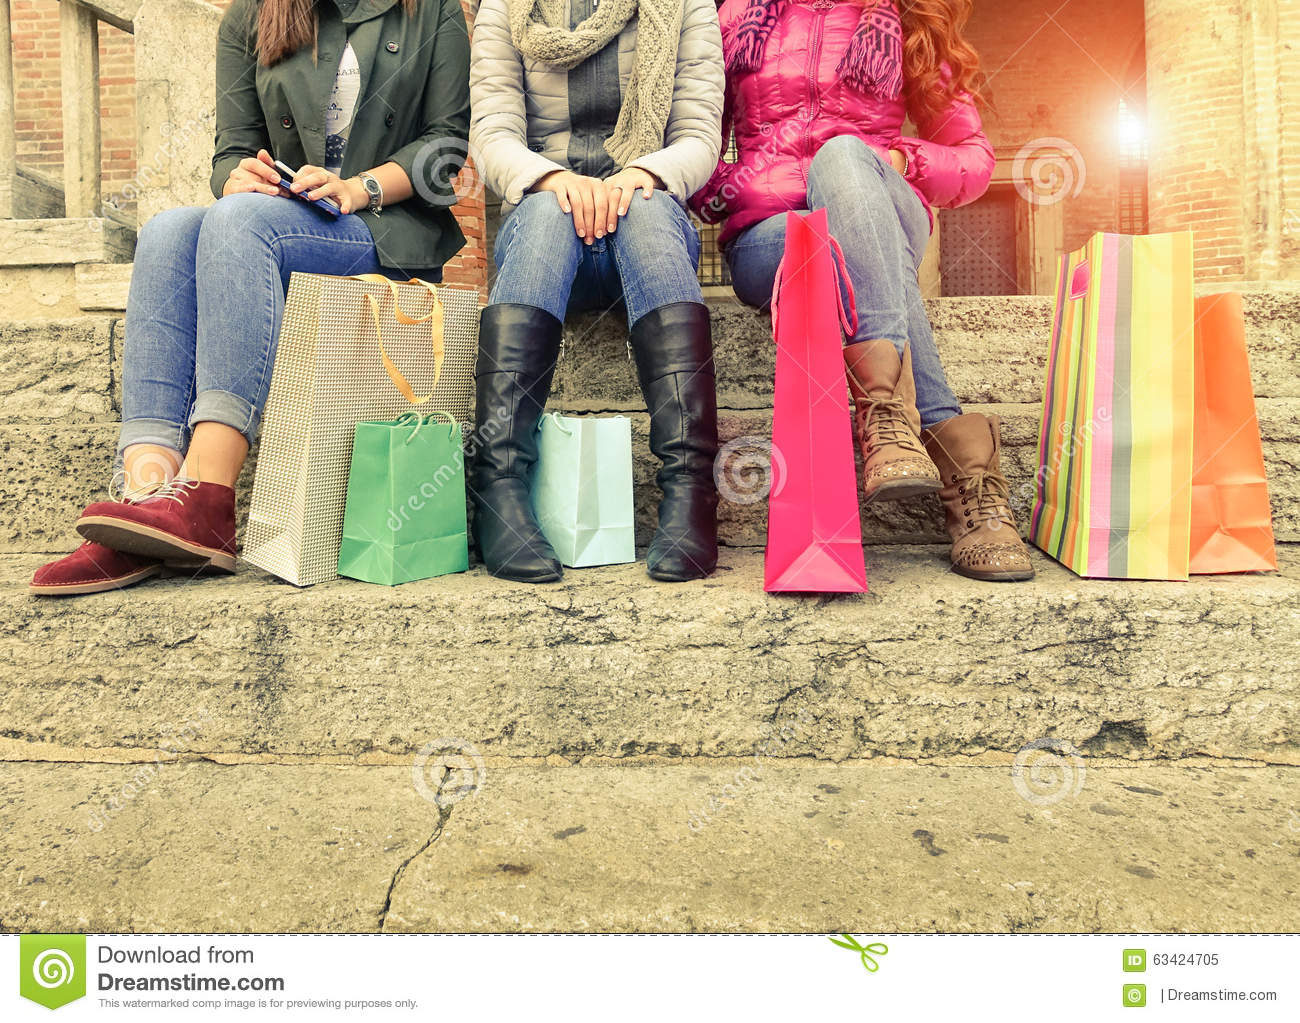 Group girls sitting and chatting after shopping in city